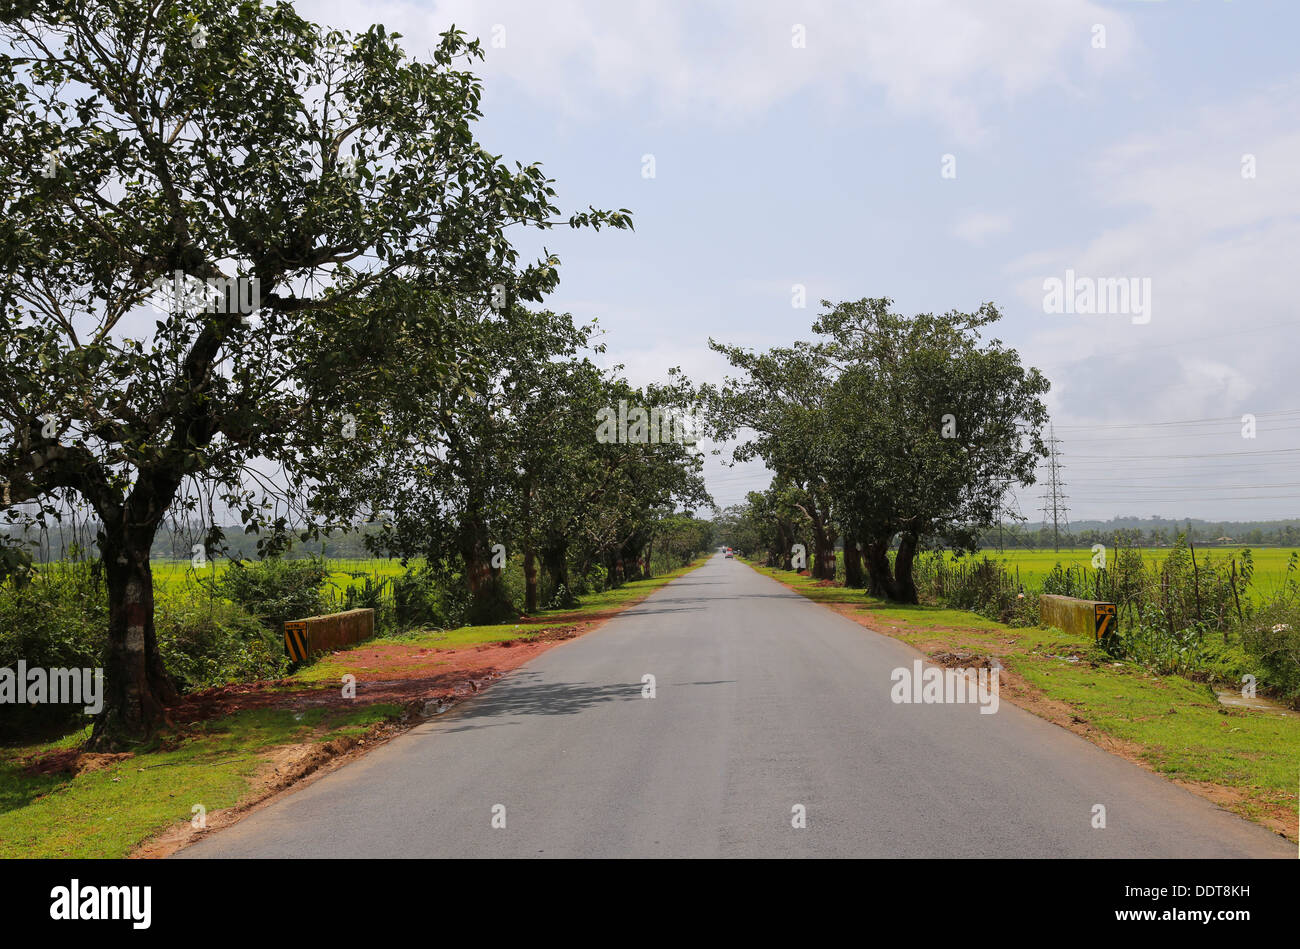 Long road with trees in Karnataka, India Stock Photo